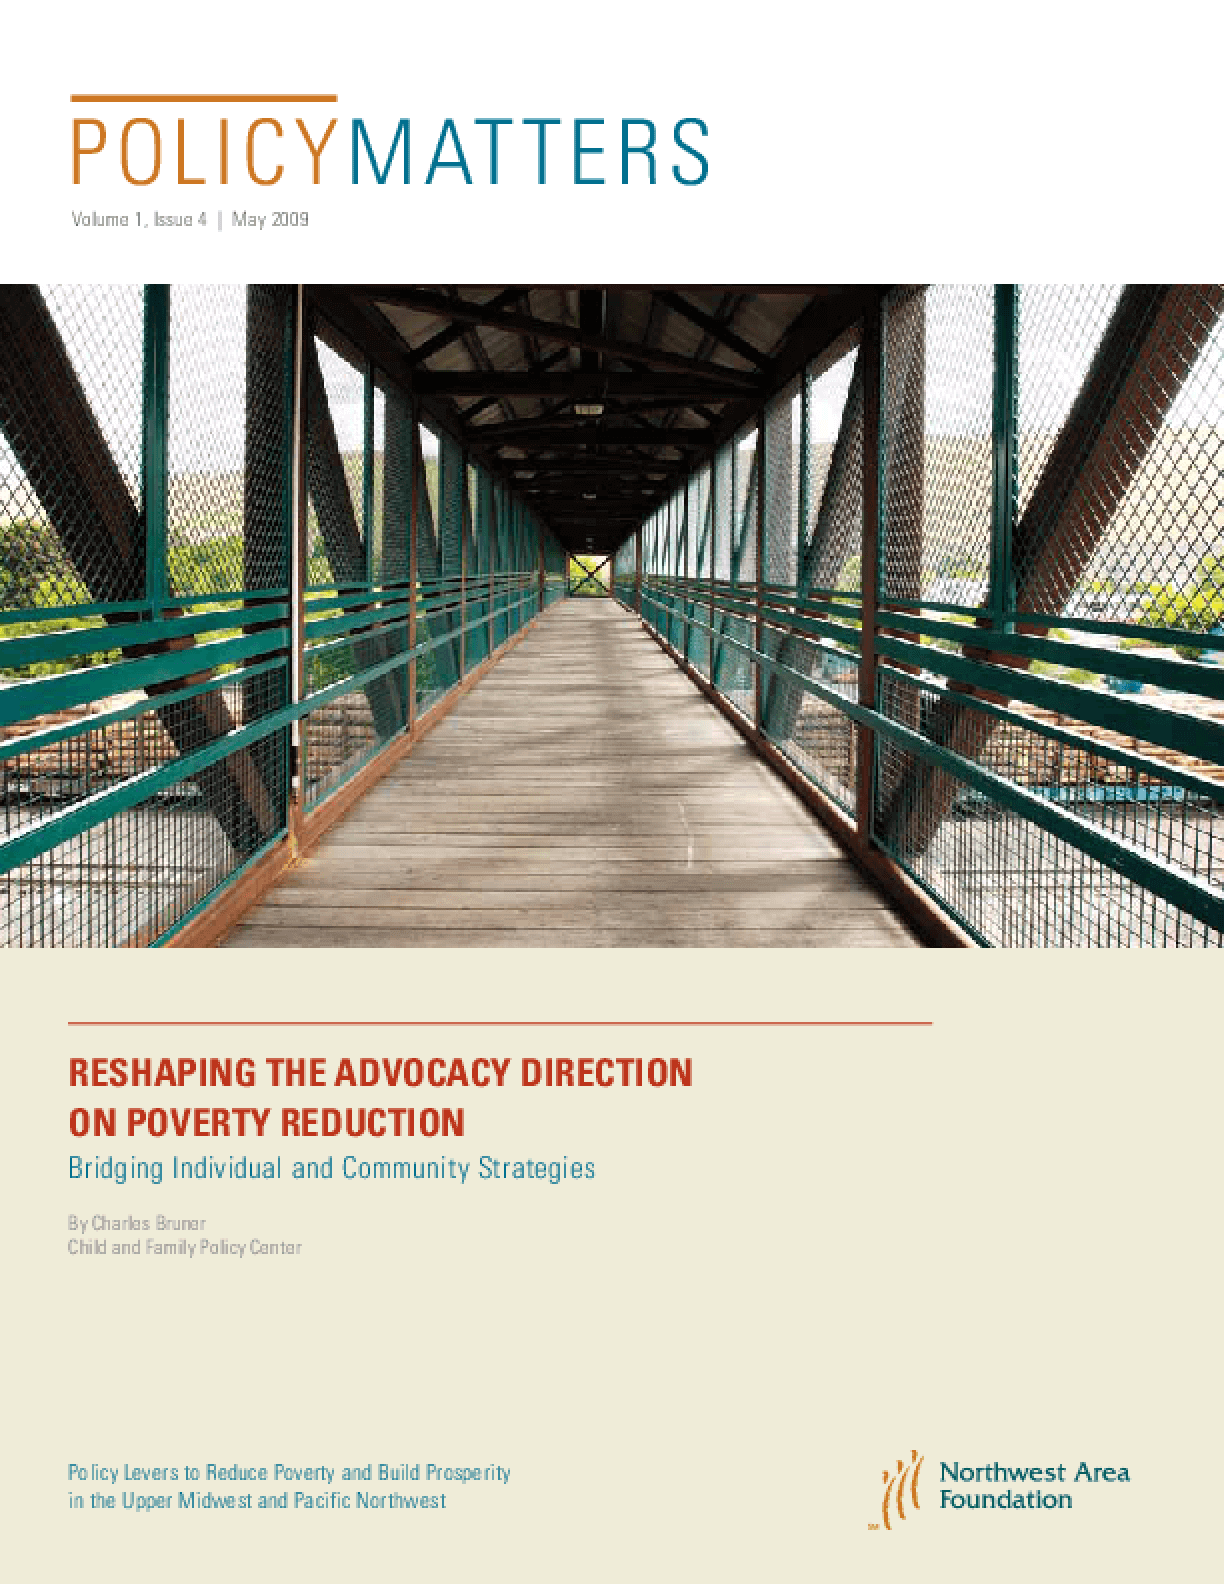 PolicyMatters: Reshaping the Advocacy Direction on Poverty Reduction